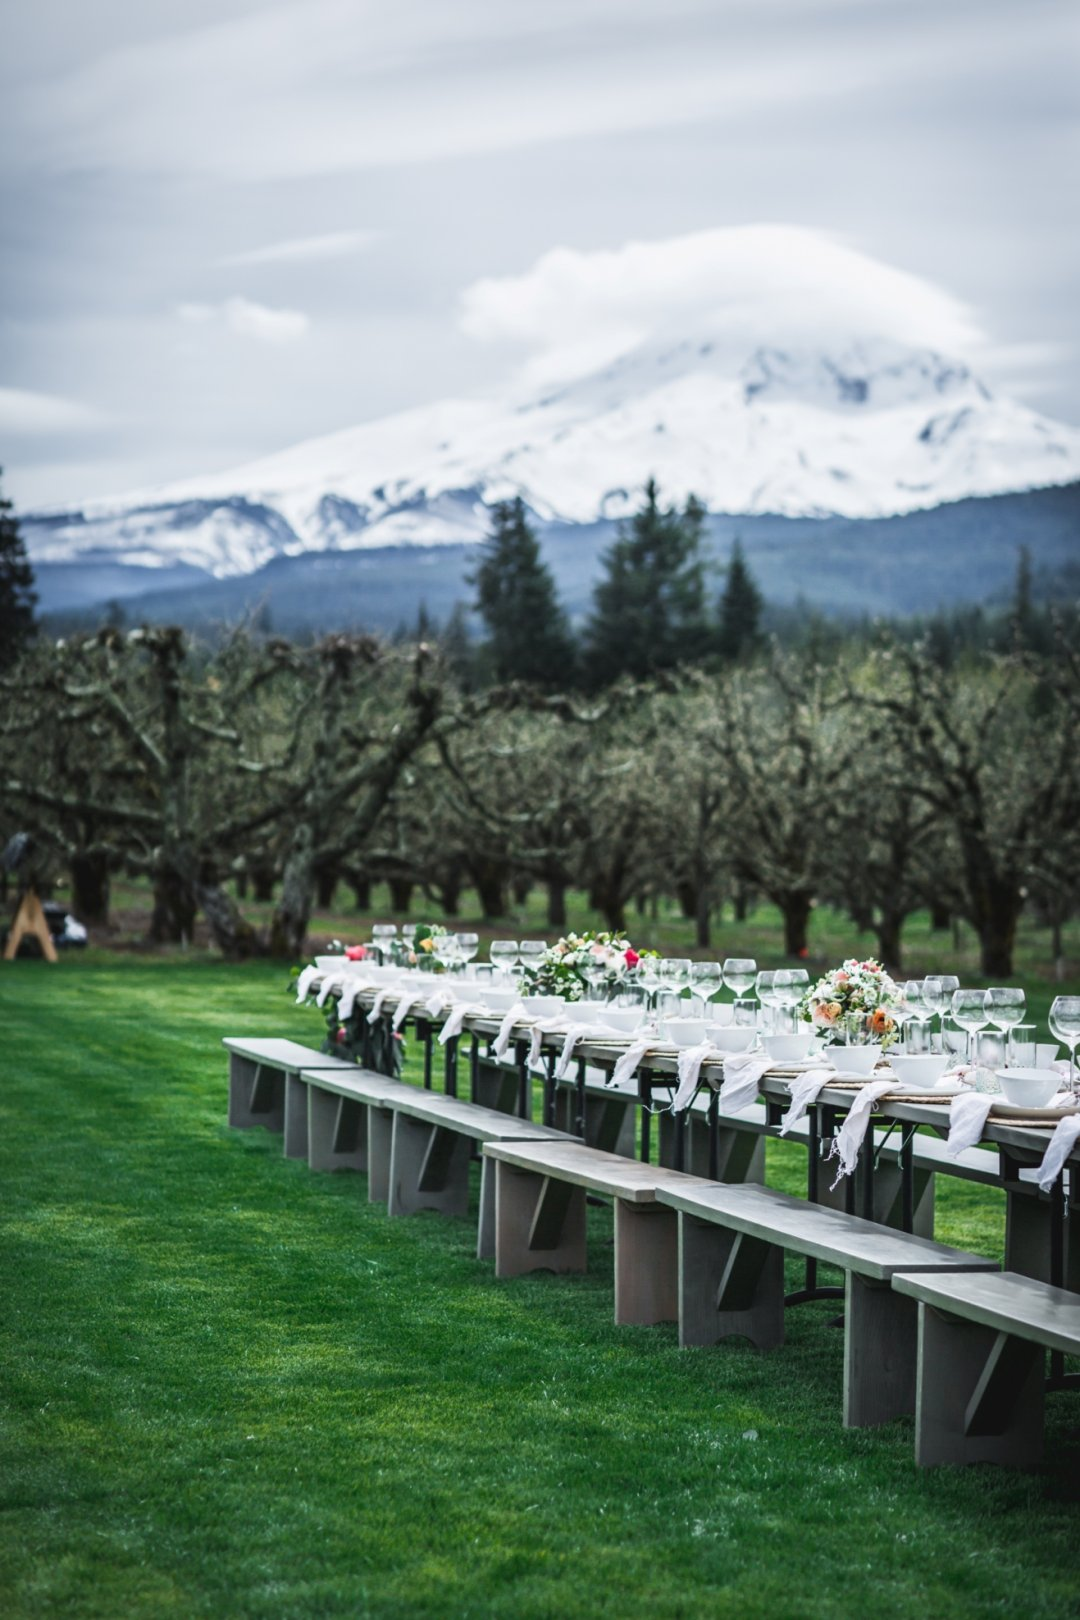 View of long table with flowers and mountains in background